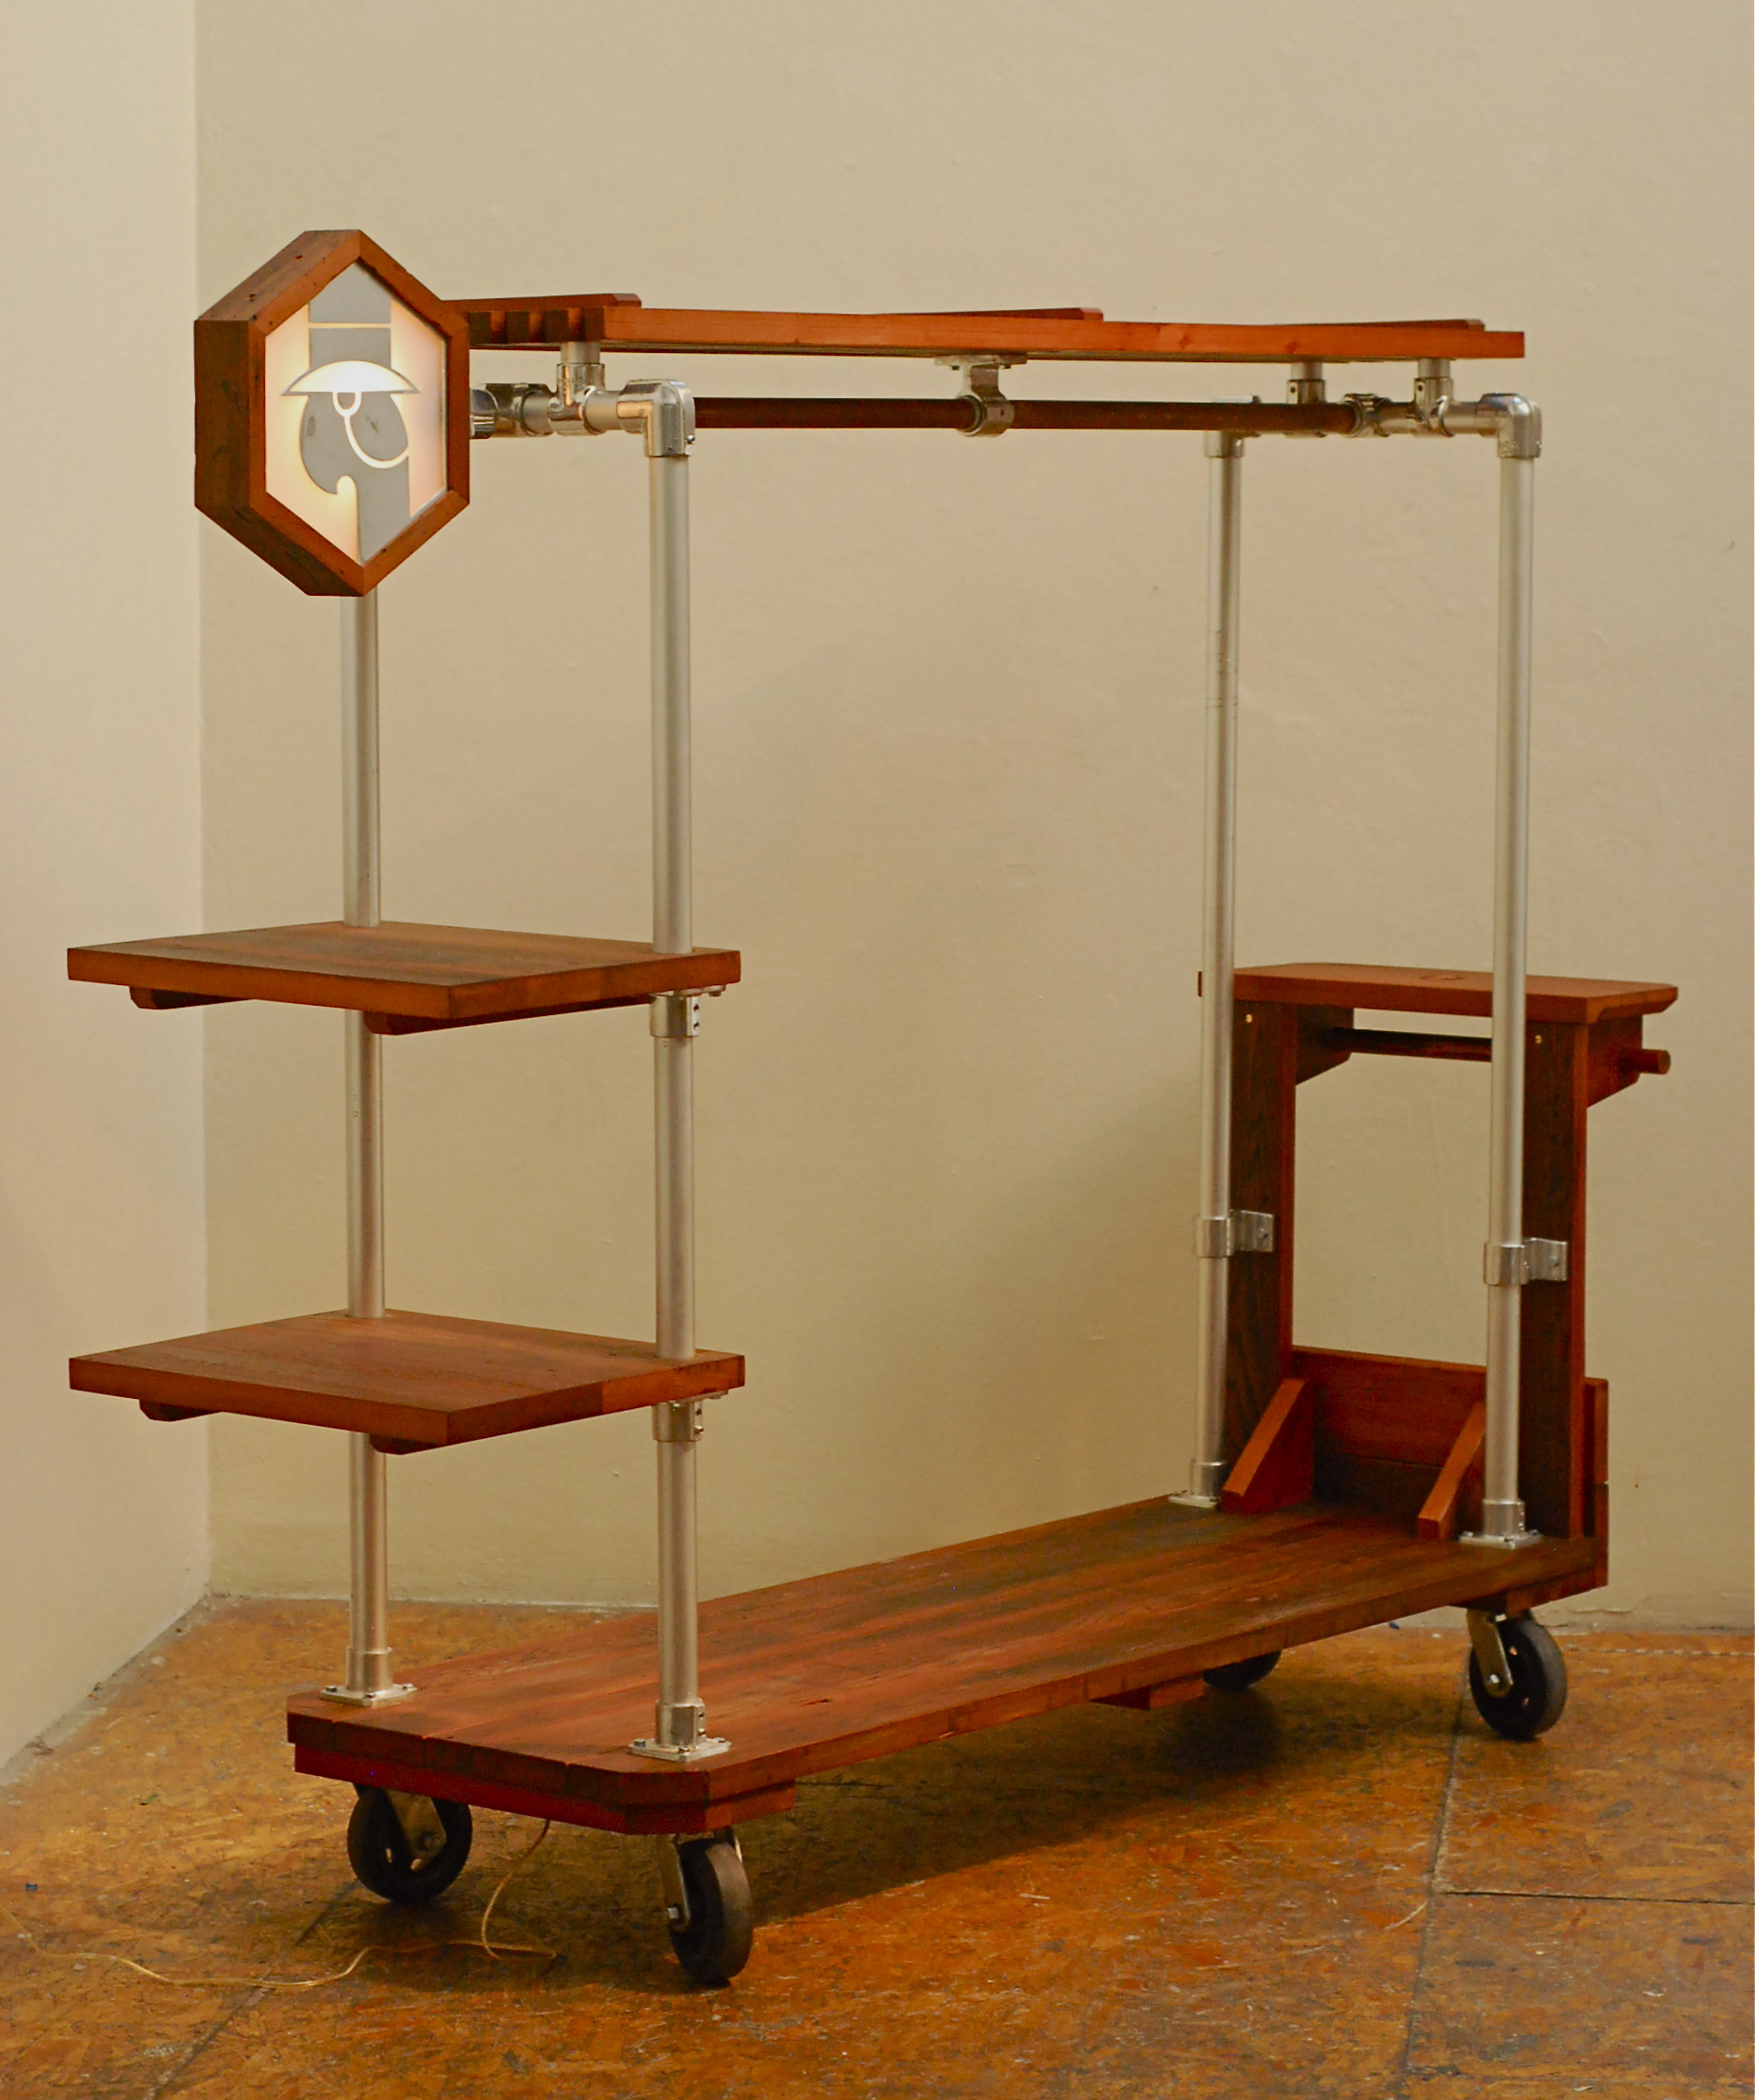 Free mission desk lamp woodworking plans, Tools For Wood Inlay